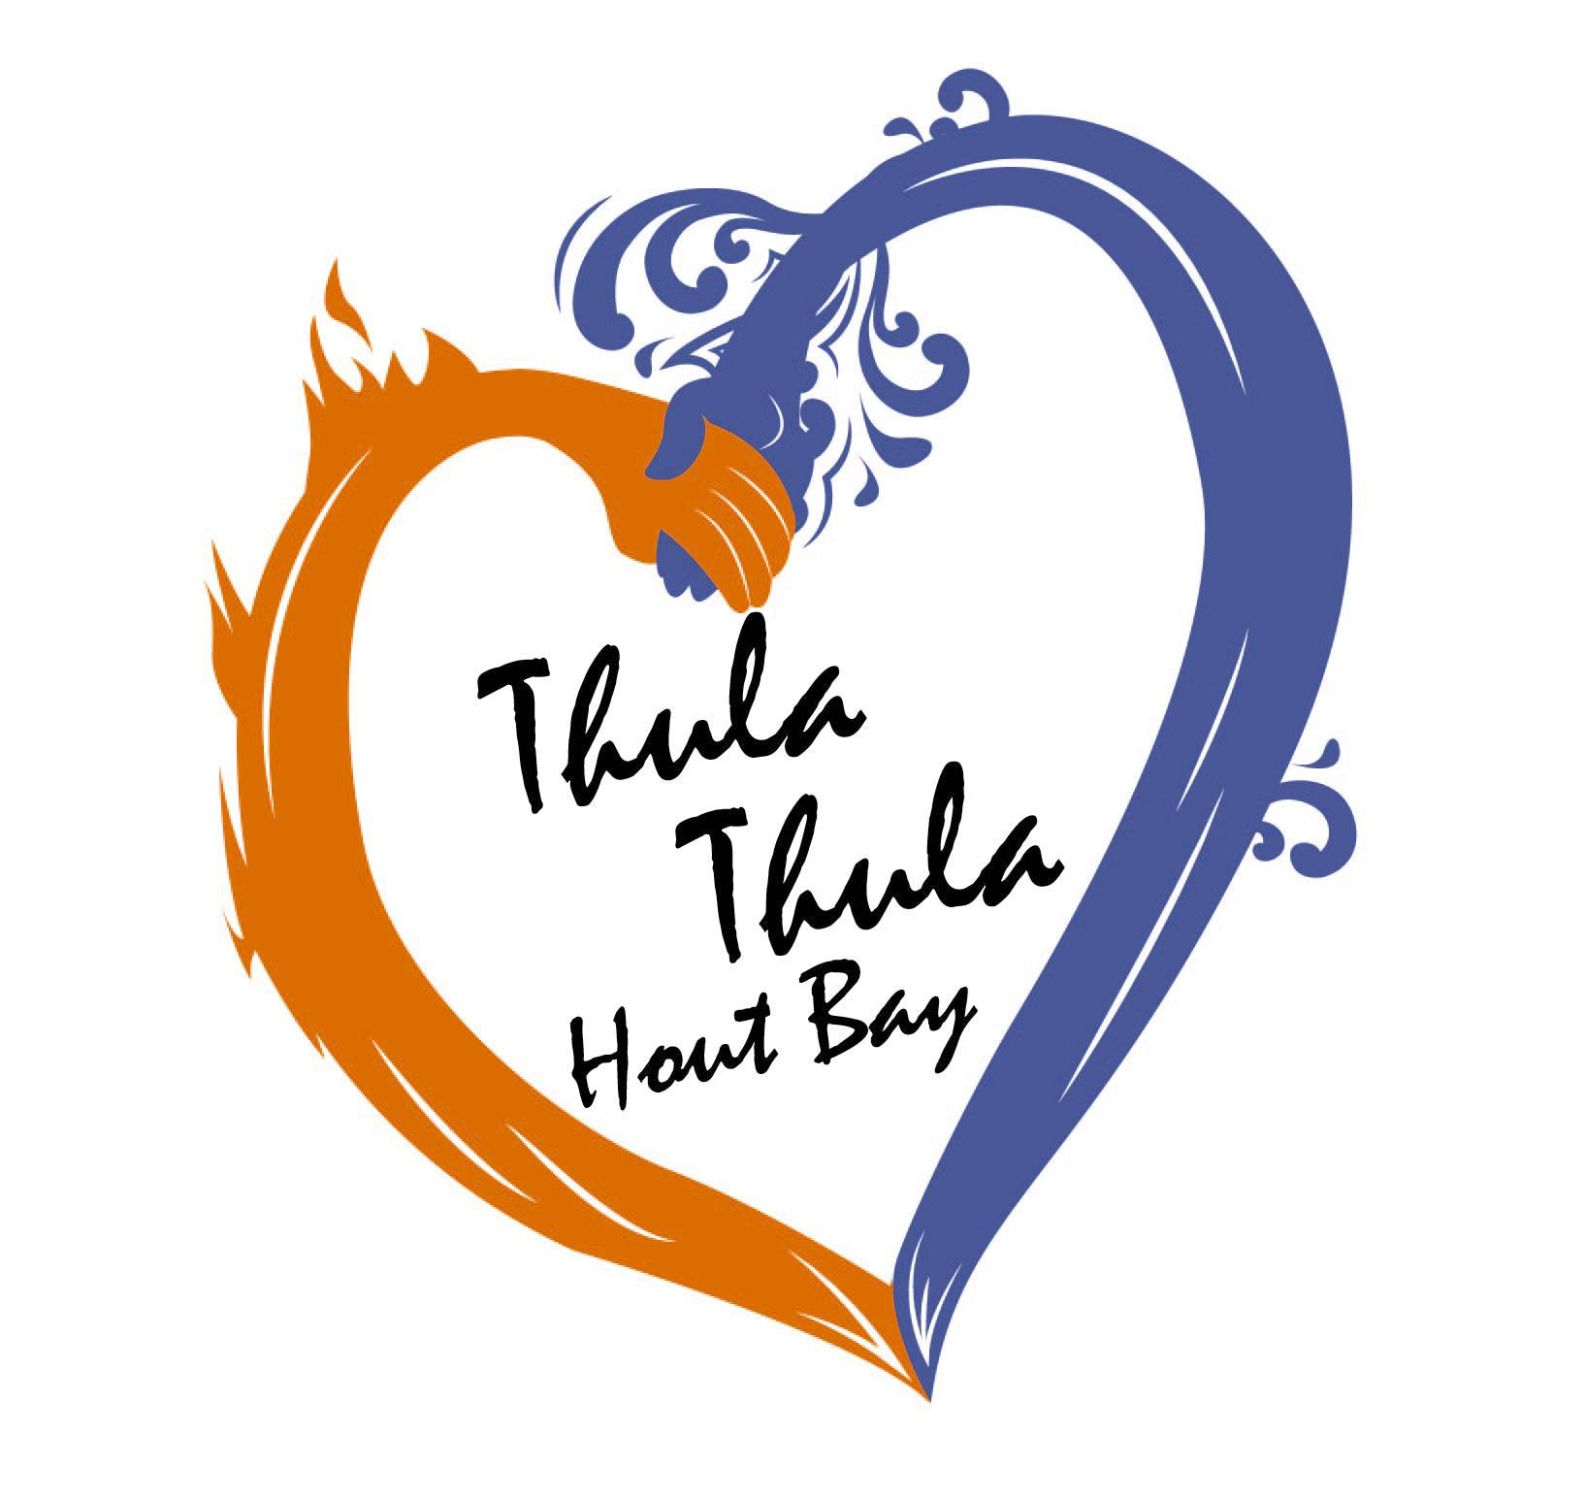 Thula Thula Hout Bay Foundation